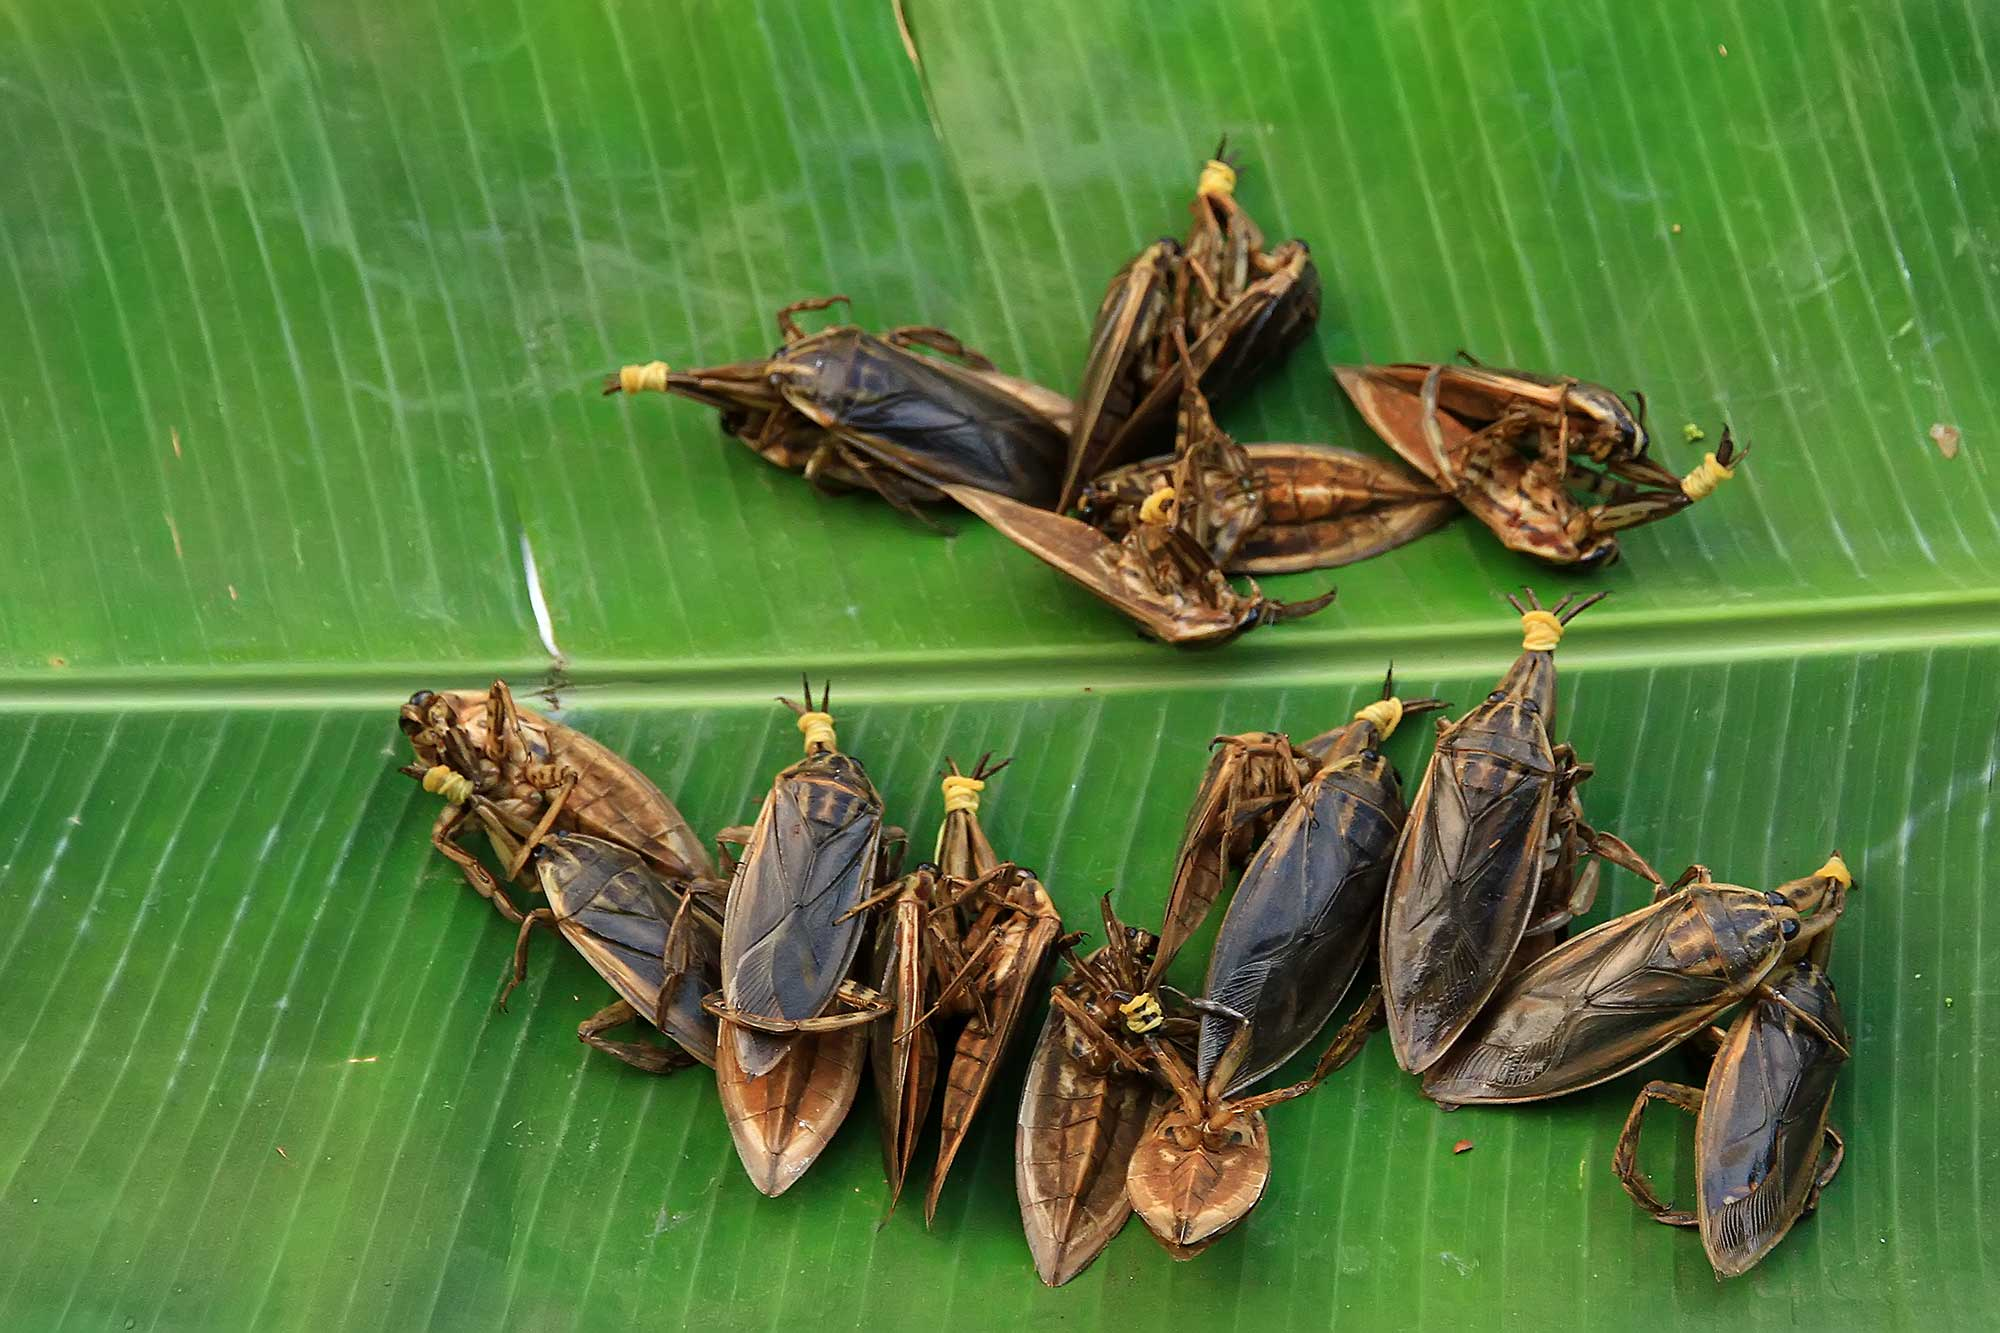 Crickets at a market in Vientiane, Laos. © Ulli Maier & Nisa Maier